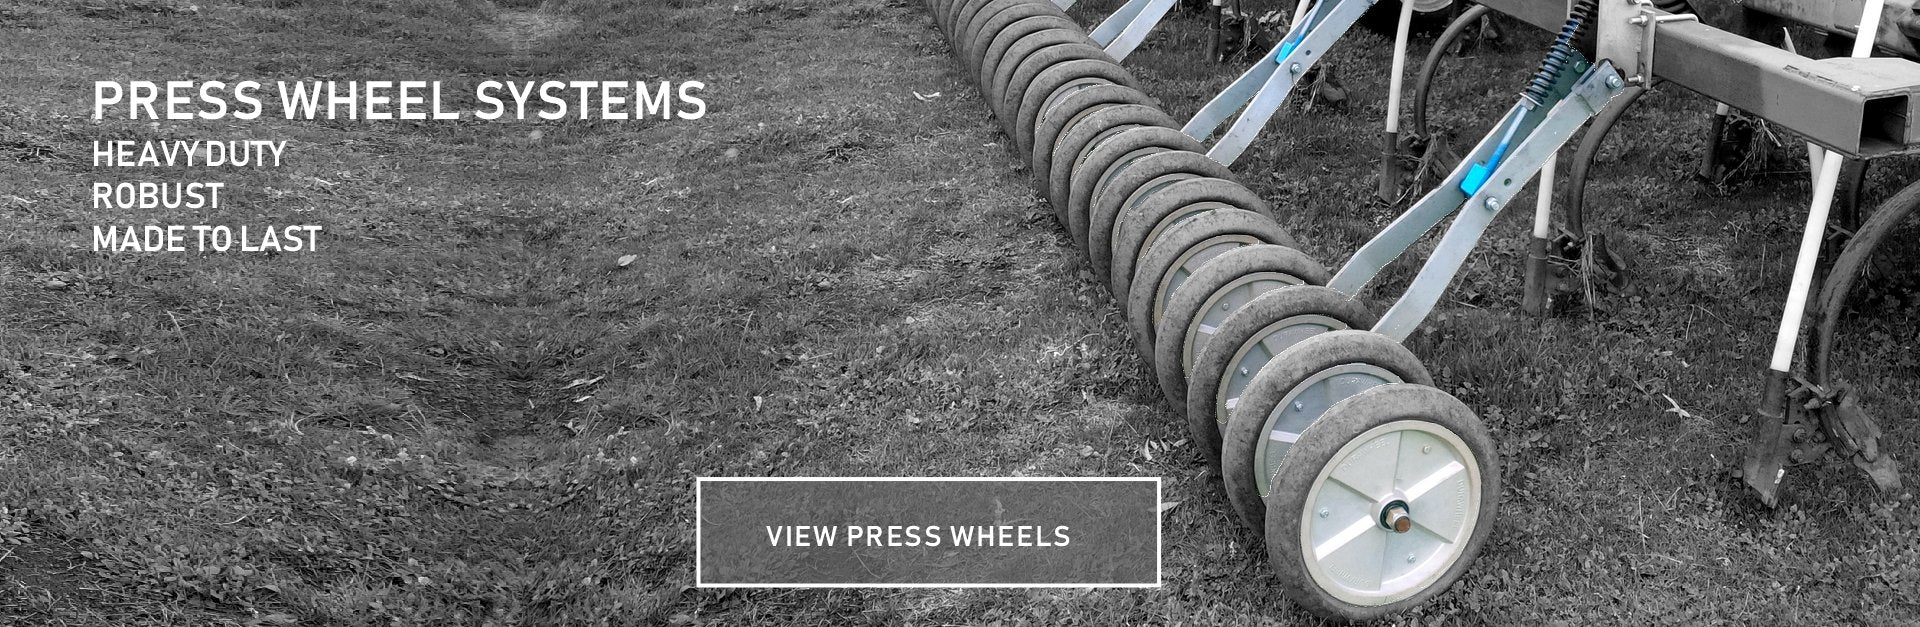 Maxipoint press wheels